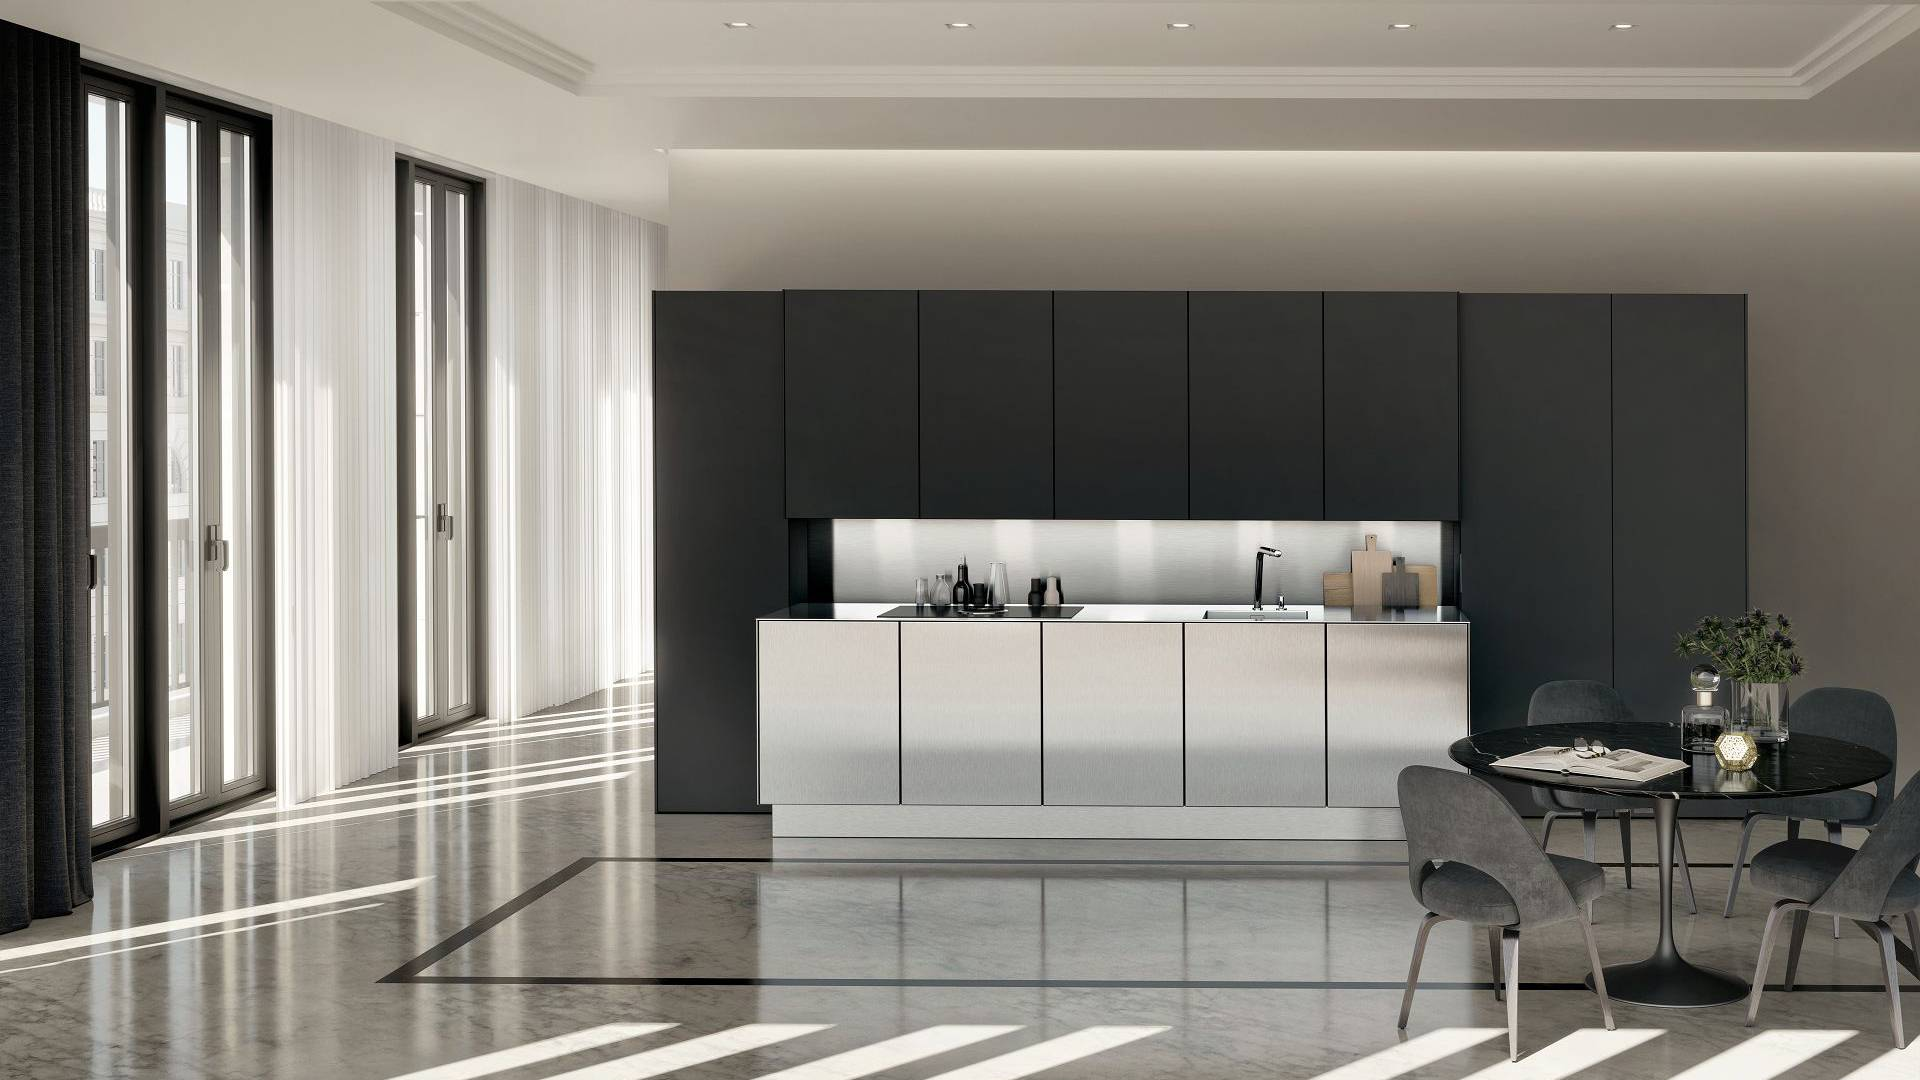 SieMatic Pure SE kitchen with tall and wall cabinets in graphite grey matte lacquer as well as base cabinets in stainless steel